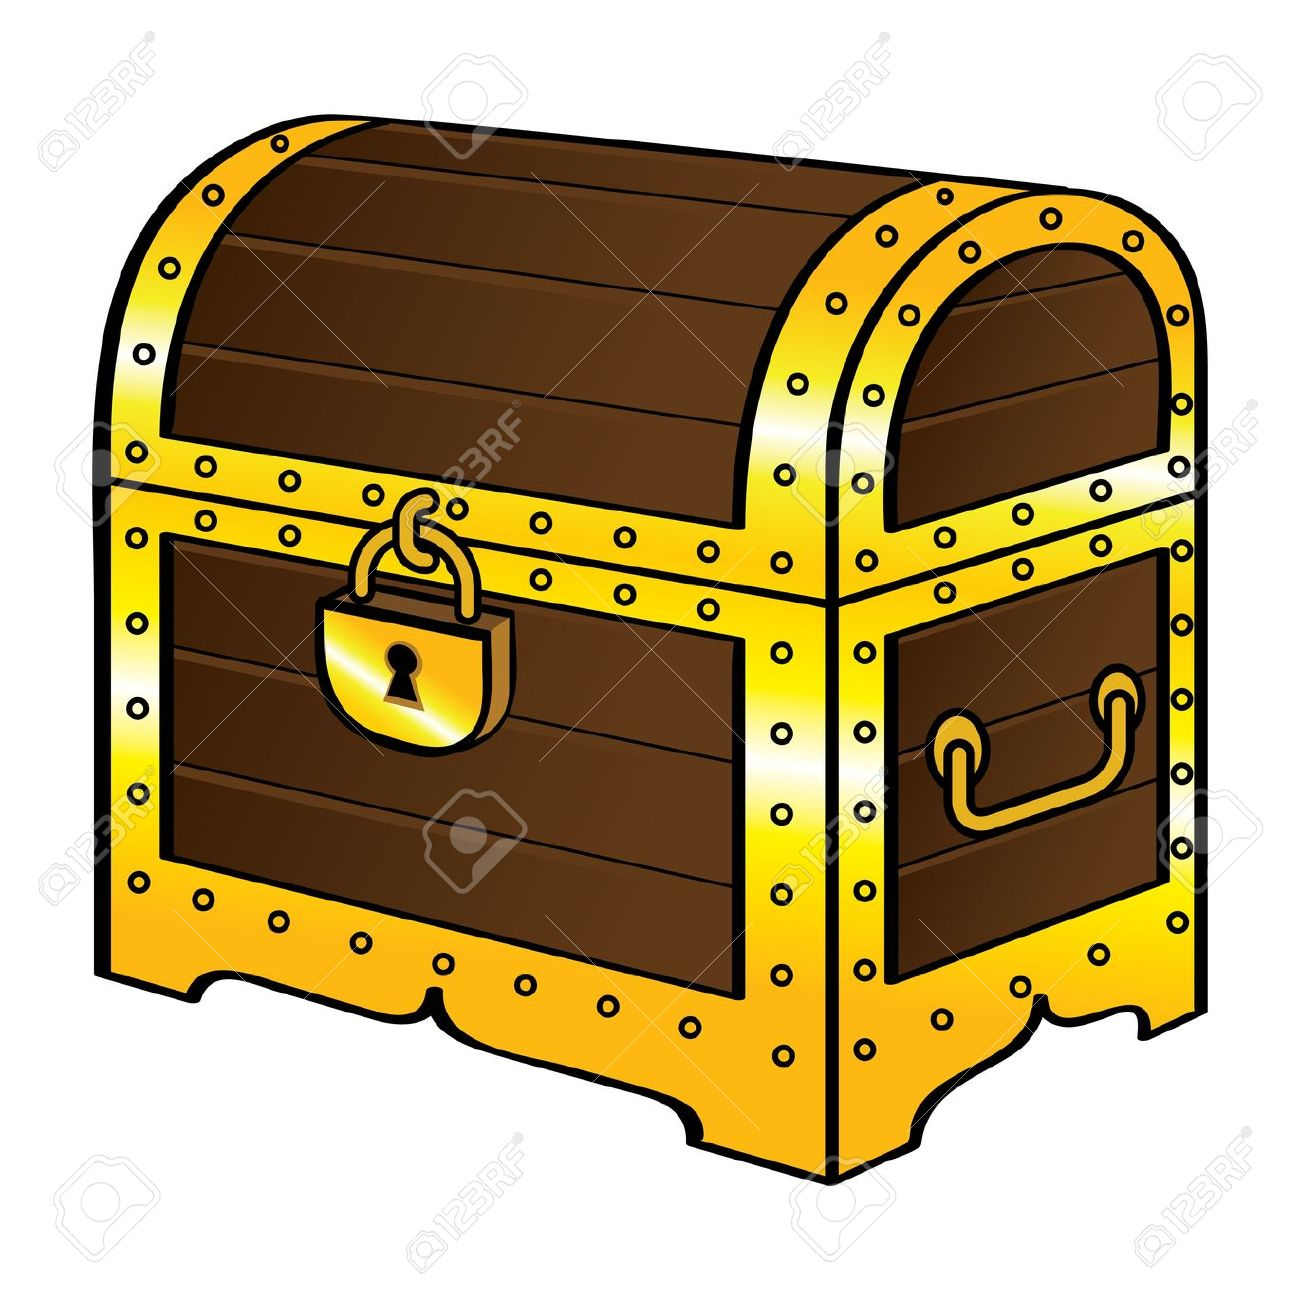 Free To Use Treasure Chest Clip art of Treasure Chest Clipart.